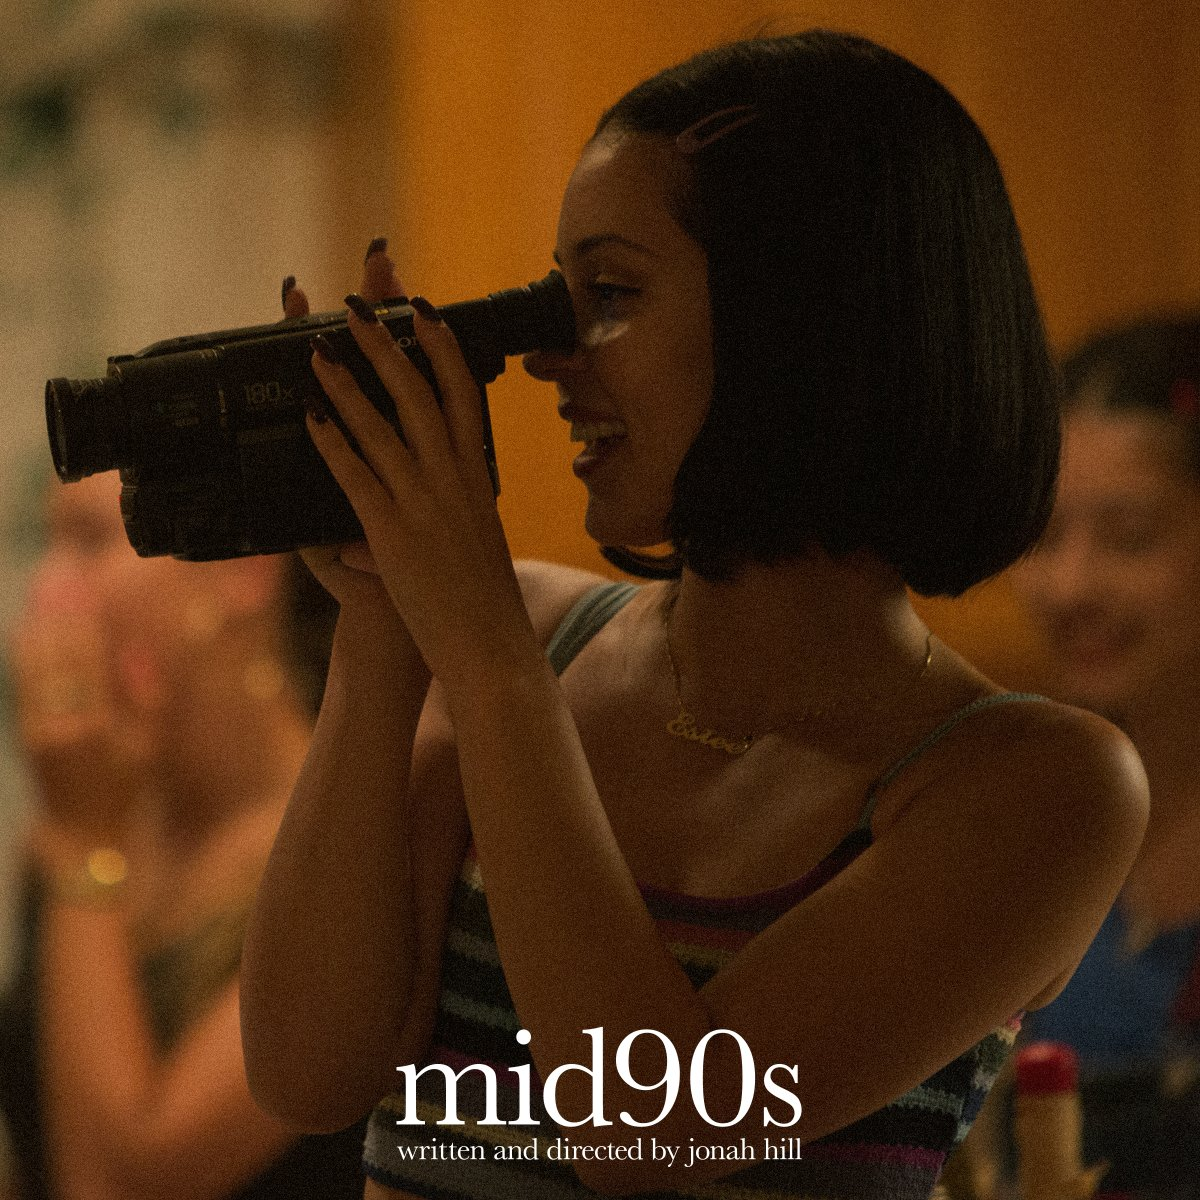 October 19 @mid90smovie